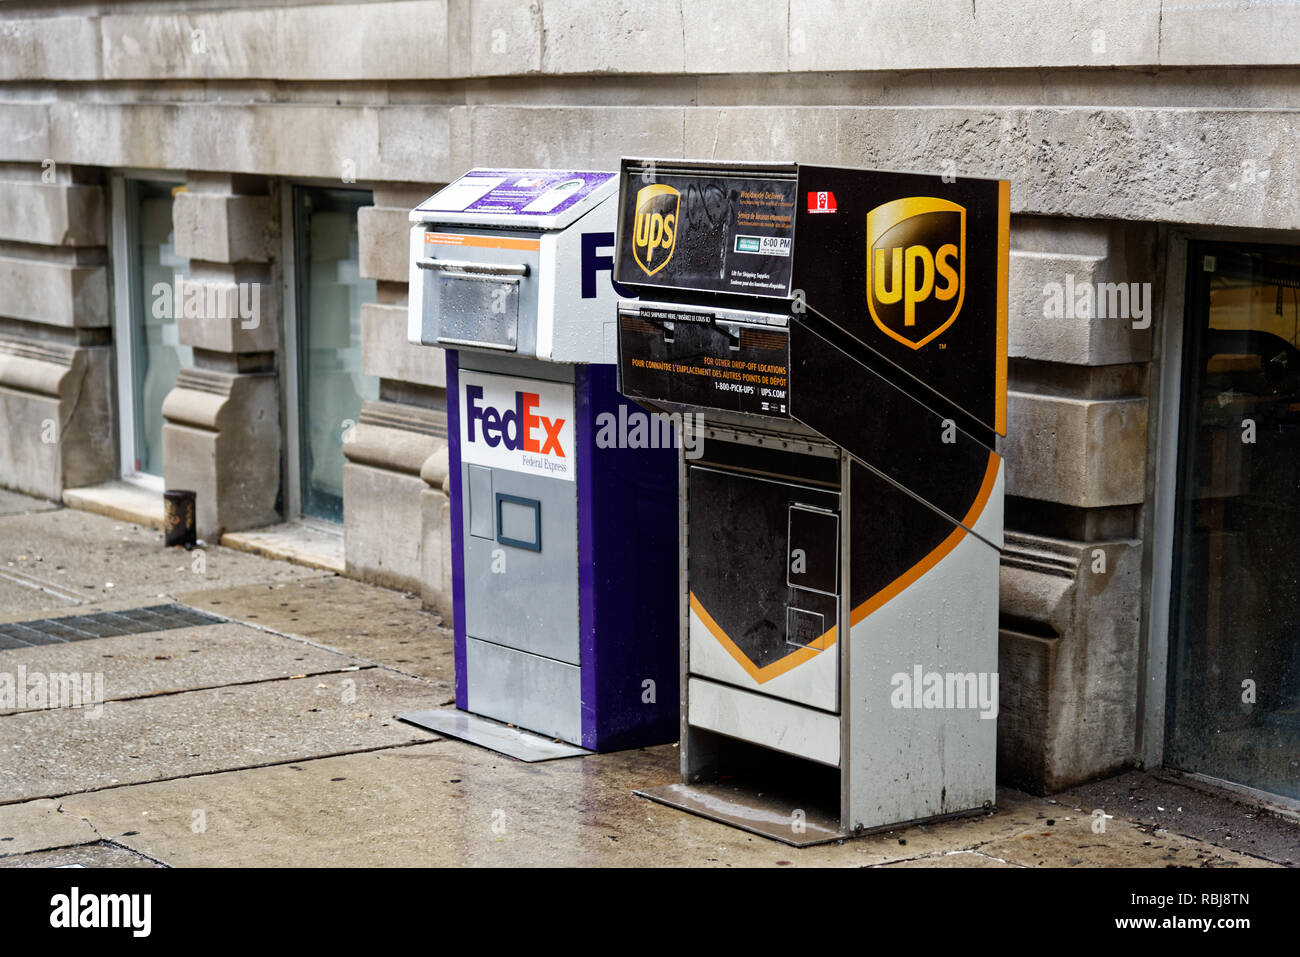 fedex ups immagini & fedex ups fotos stock - alamy